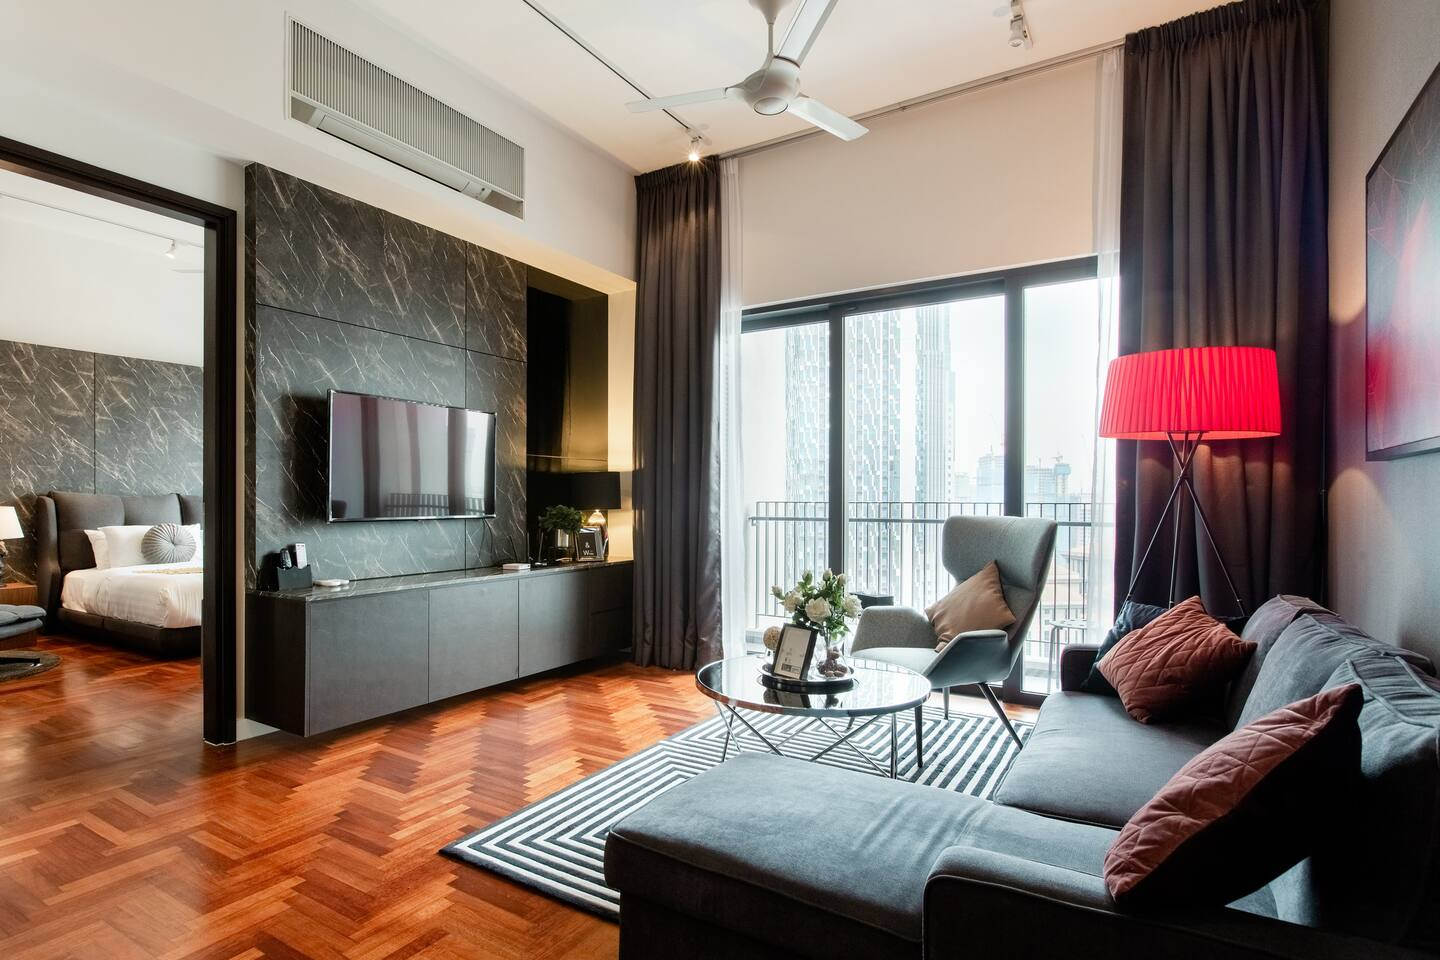 Admire Deluxe Marble Walls at a High-Rise Resort Home